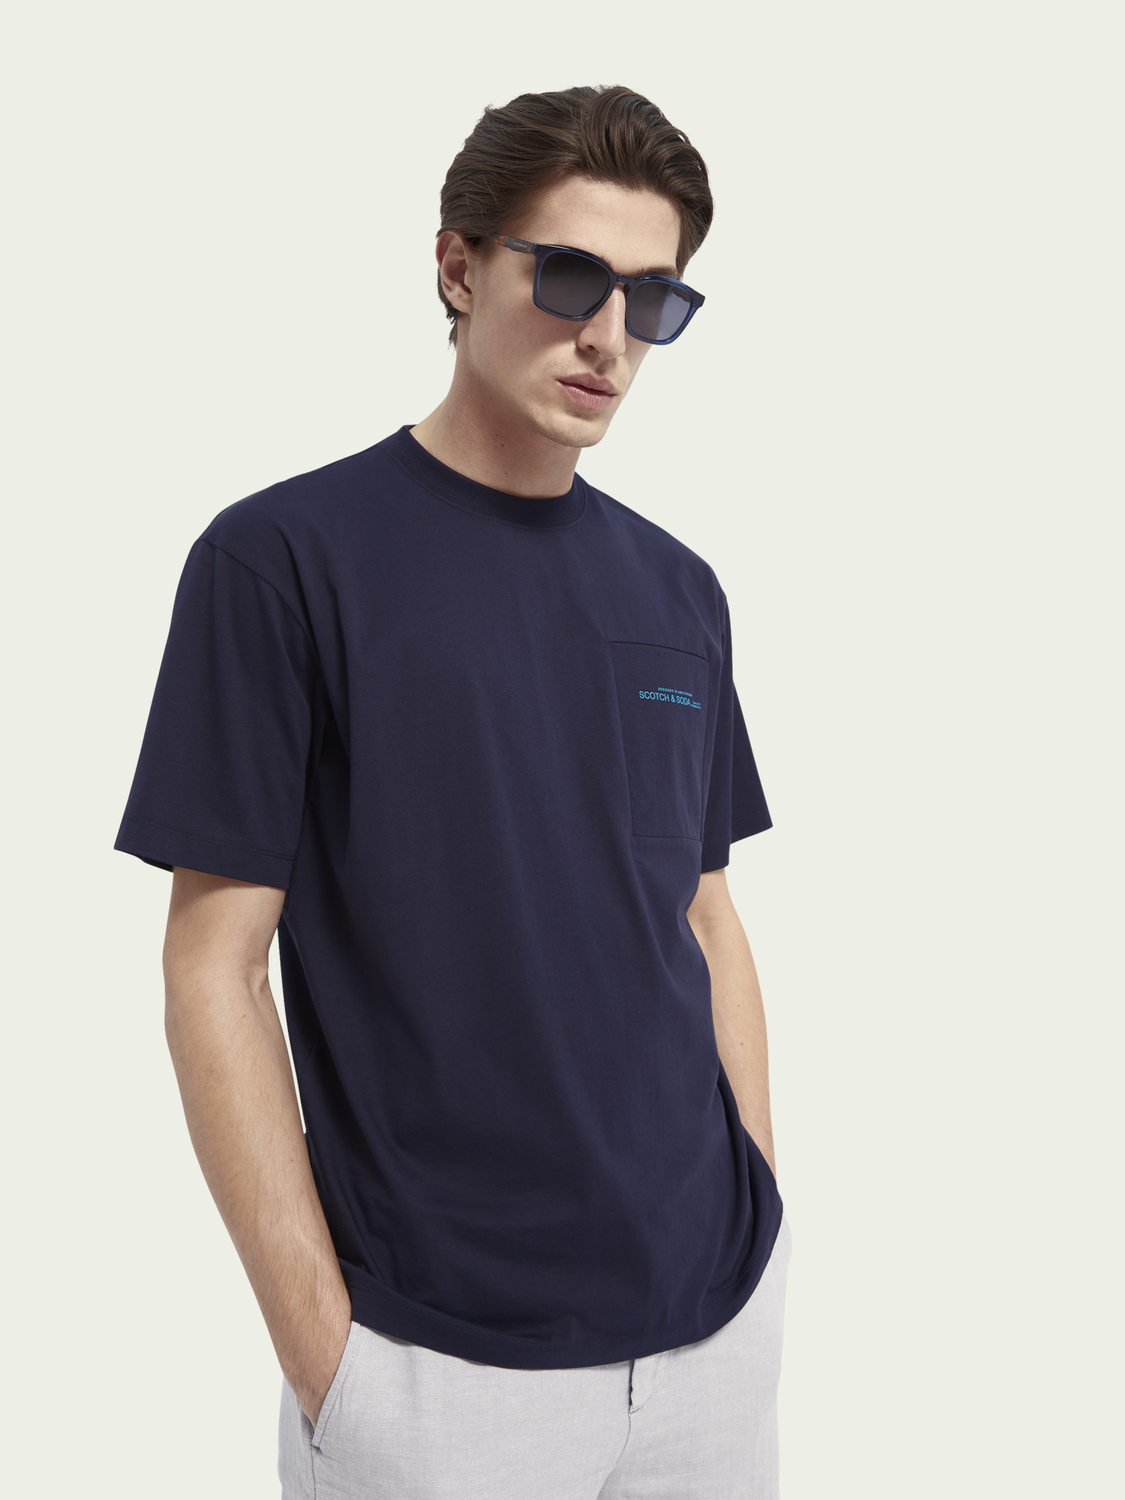 Men Relaxed-fit mercerized cotton T-shirt